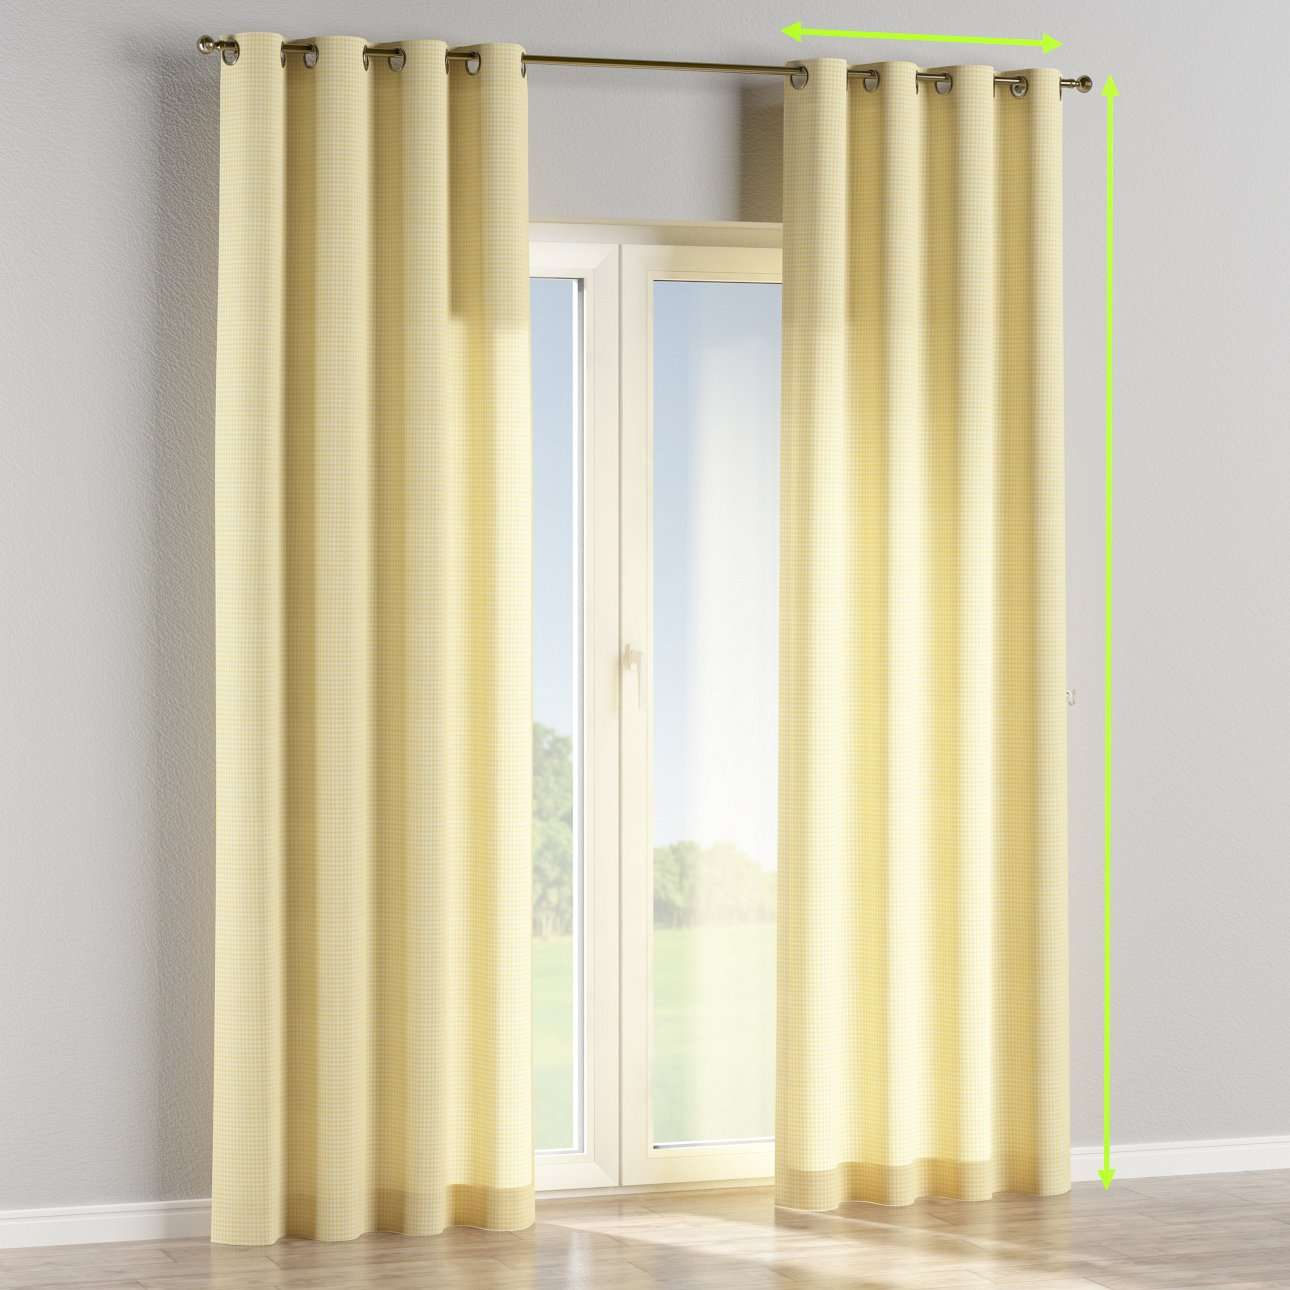 Eyelet lined curtains in collection Ashley, fabric: 137-64